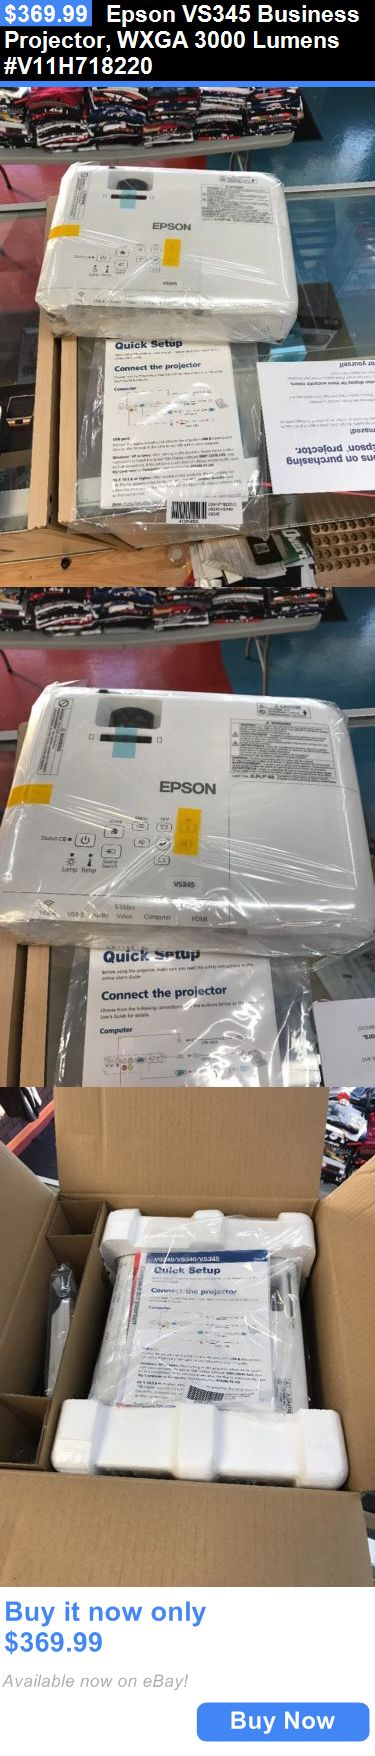 Home Audio: Epson Vs345 Business Projector, Wxga 3000 Lumens #V11h718220 BUY IT NOW ONLY: $369.99